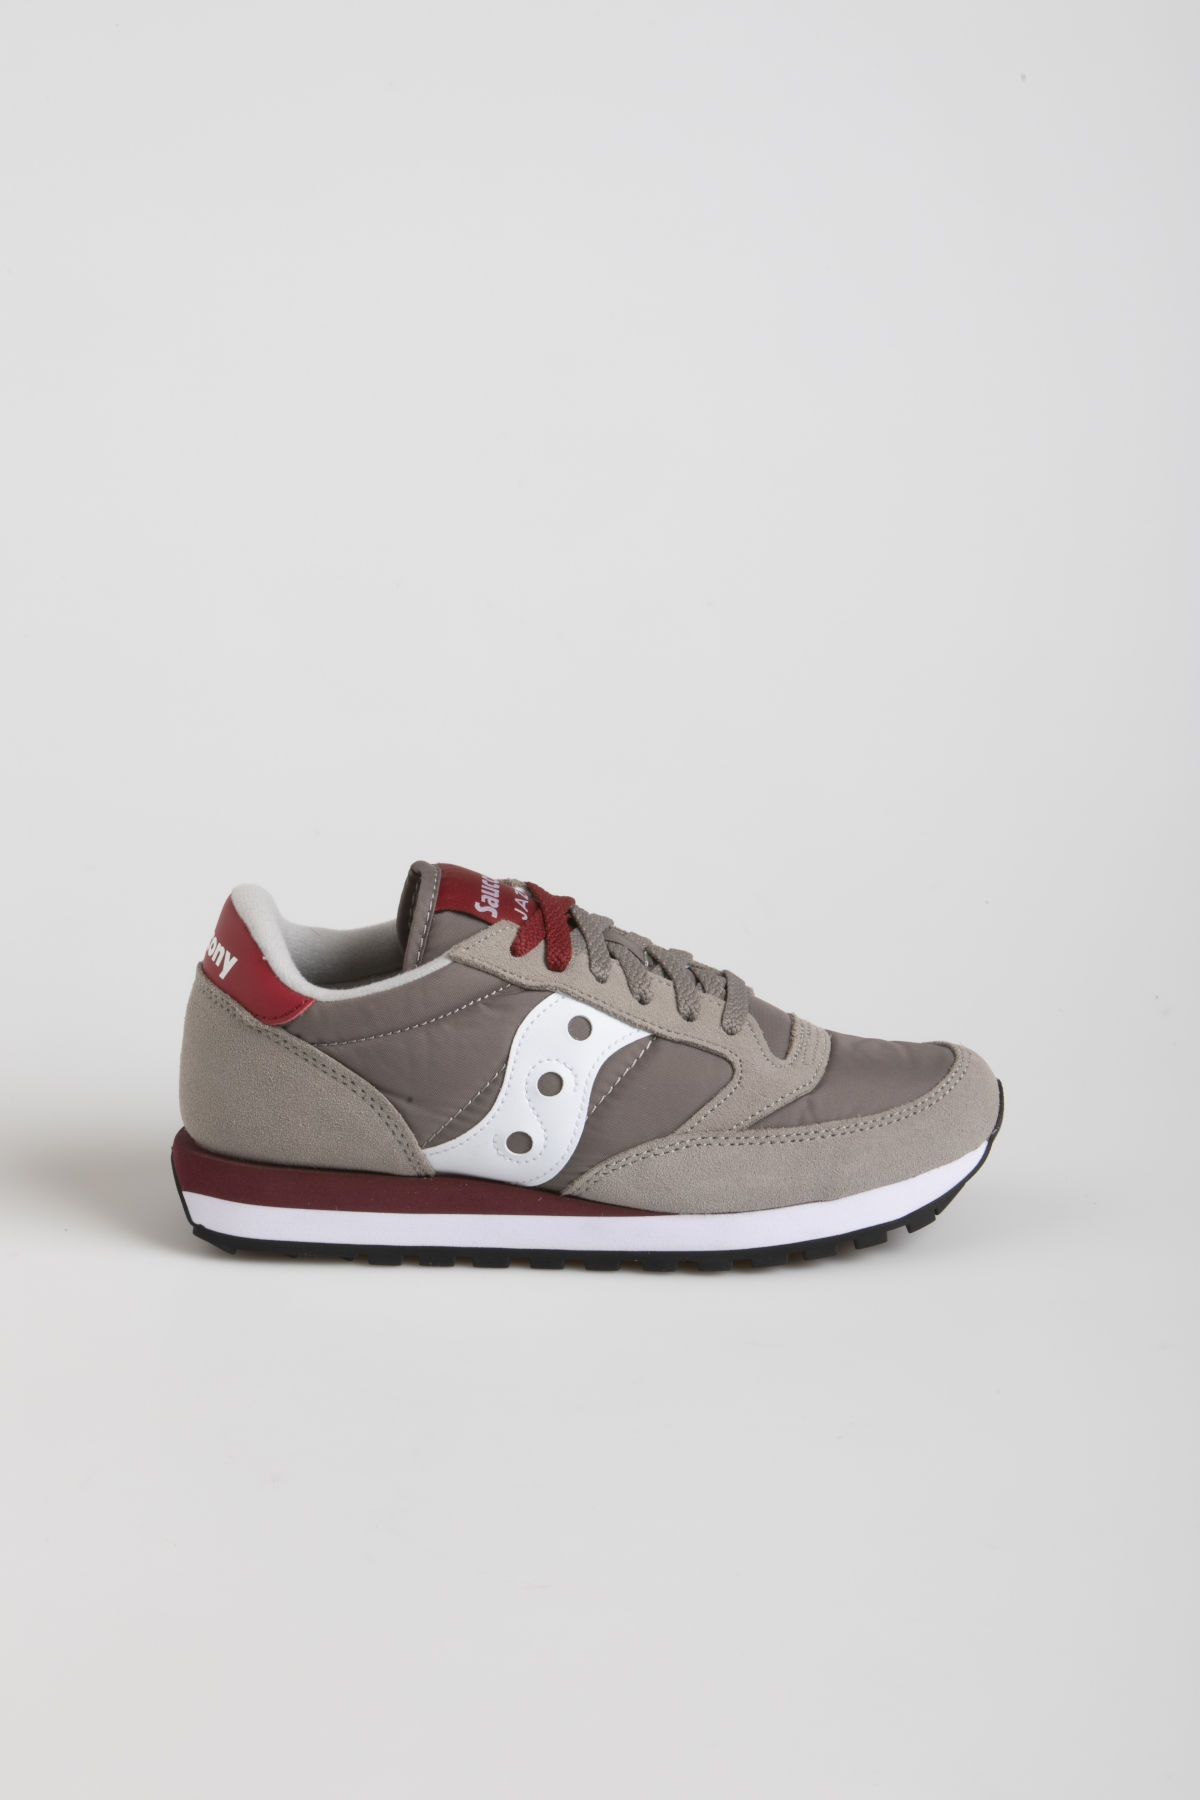 SAUCONY JAZZ O' grey / red F/W 19-20